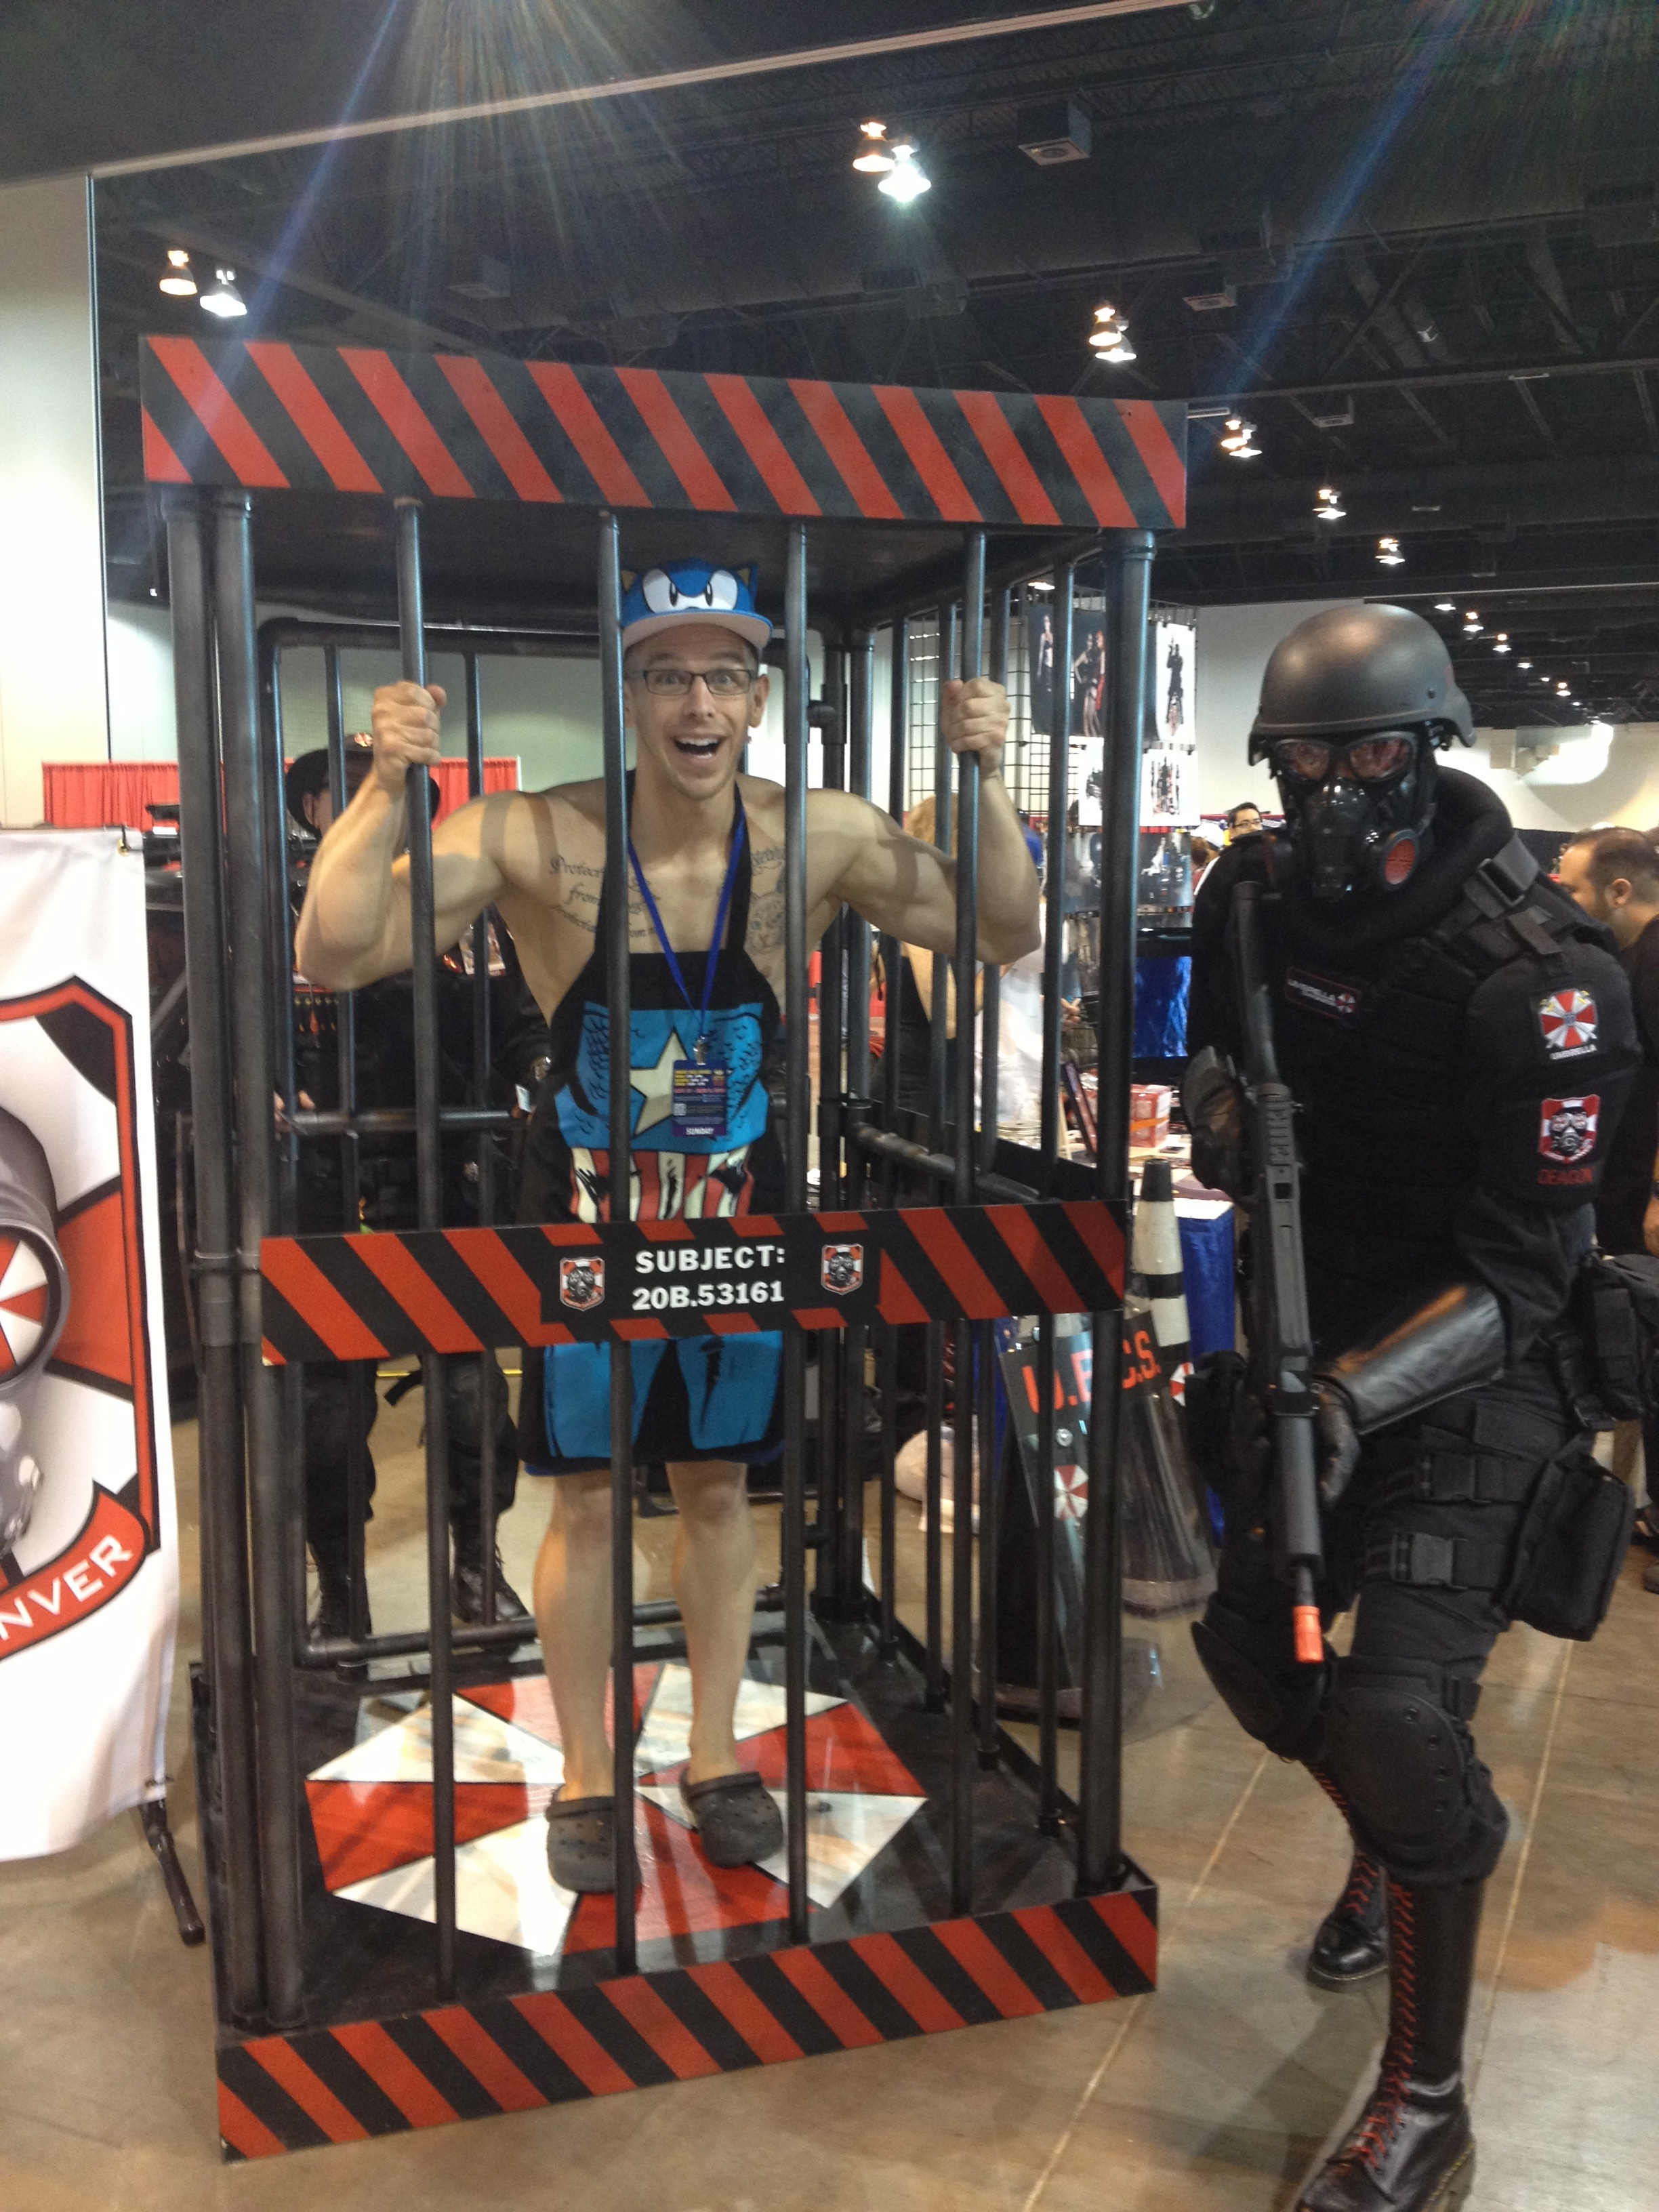 After that I got caught by Umbrella Corp because I was infected by a zombie. Their vehicle was awesome.